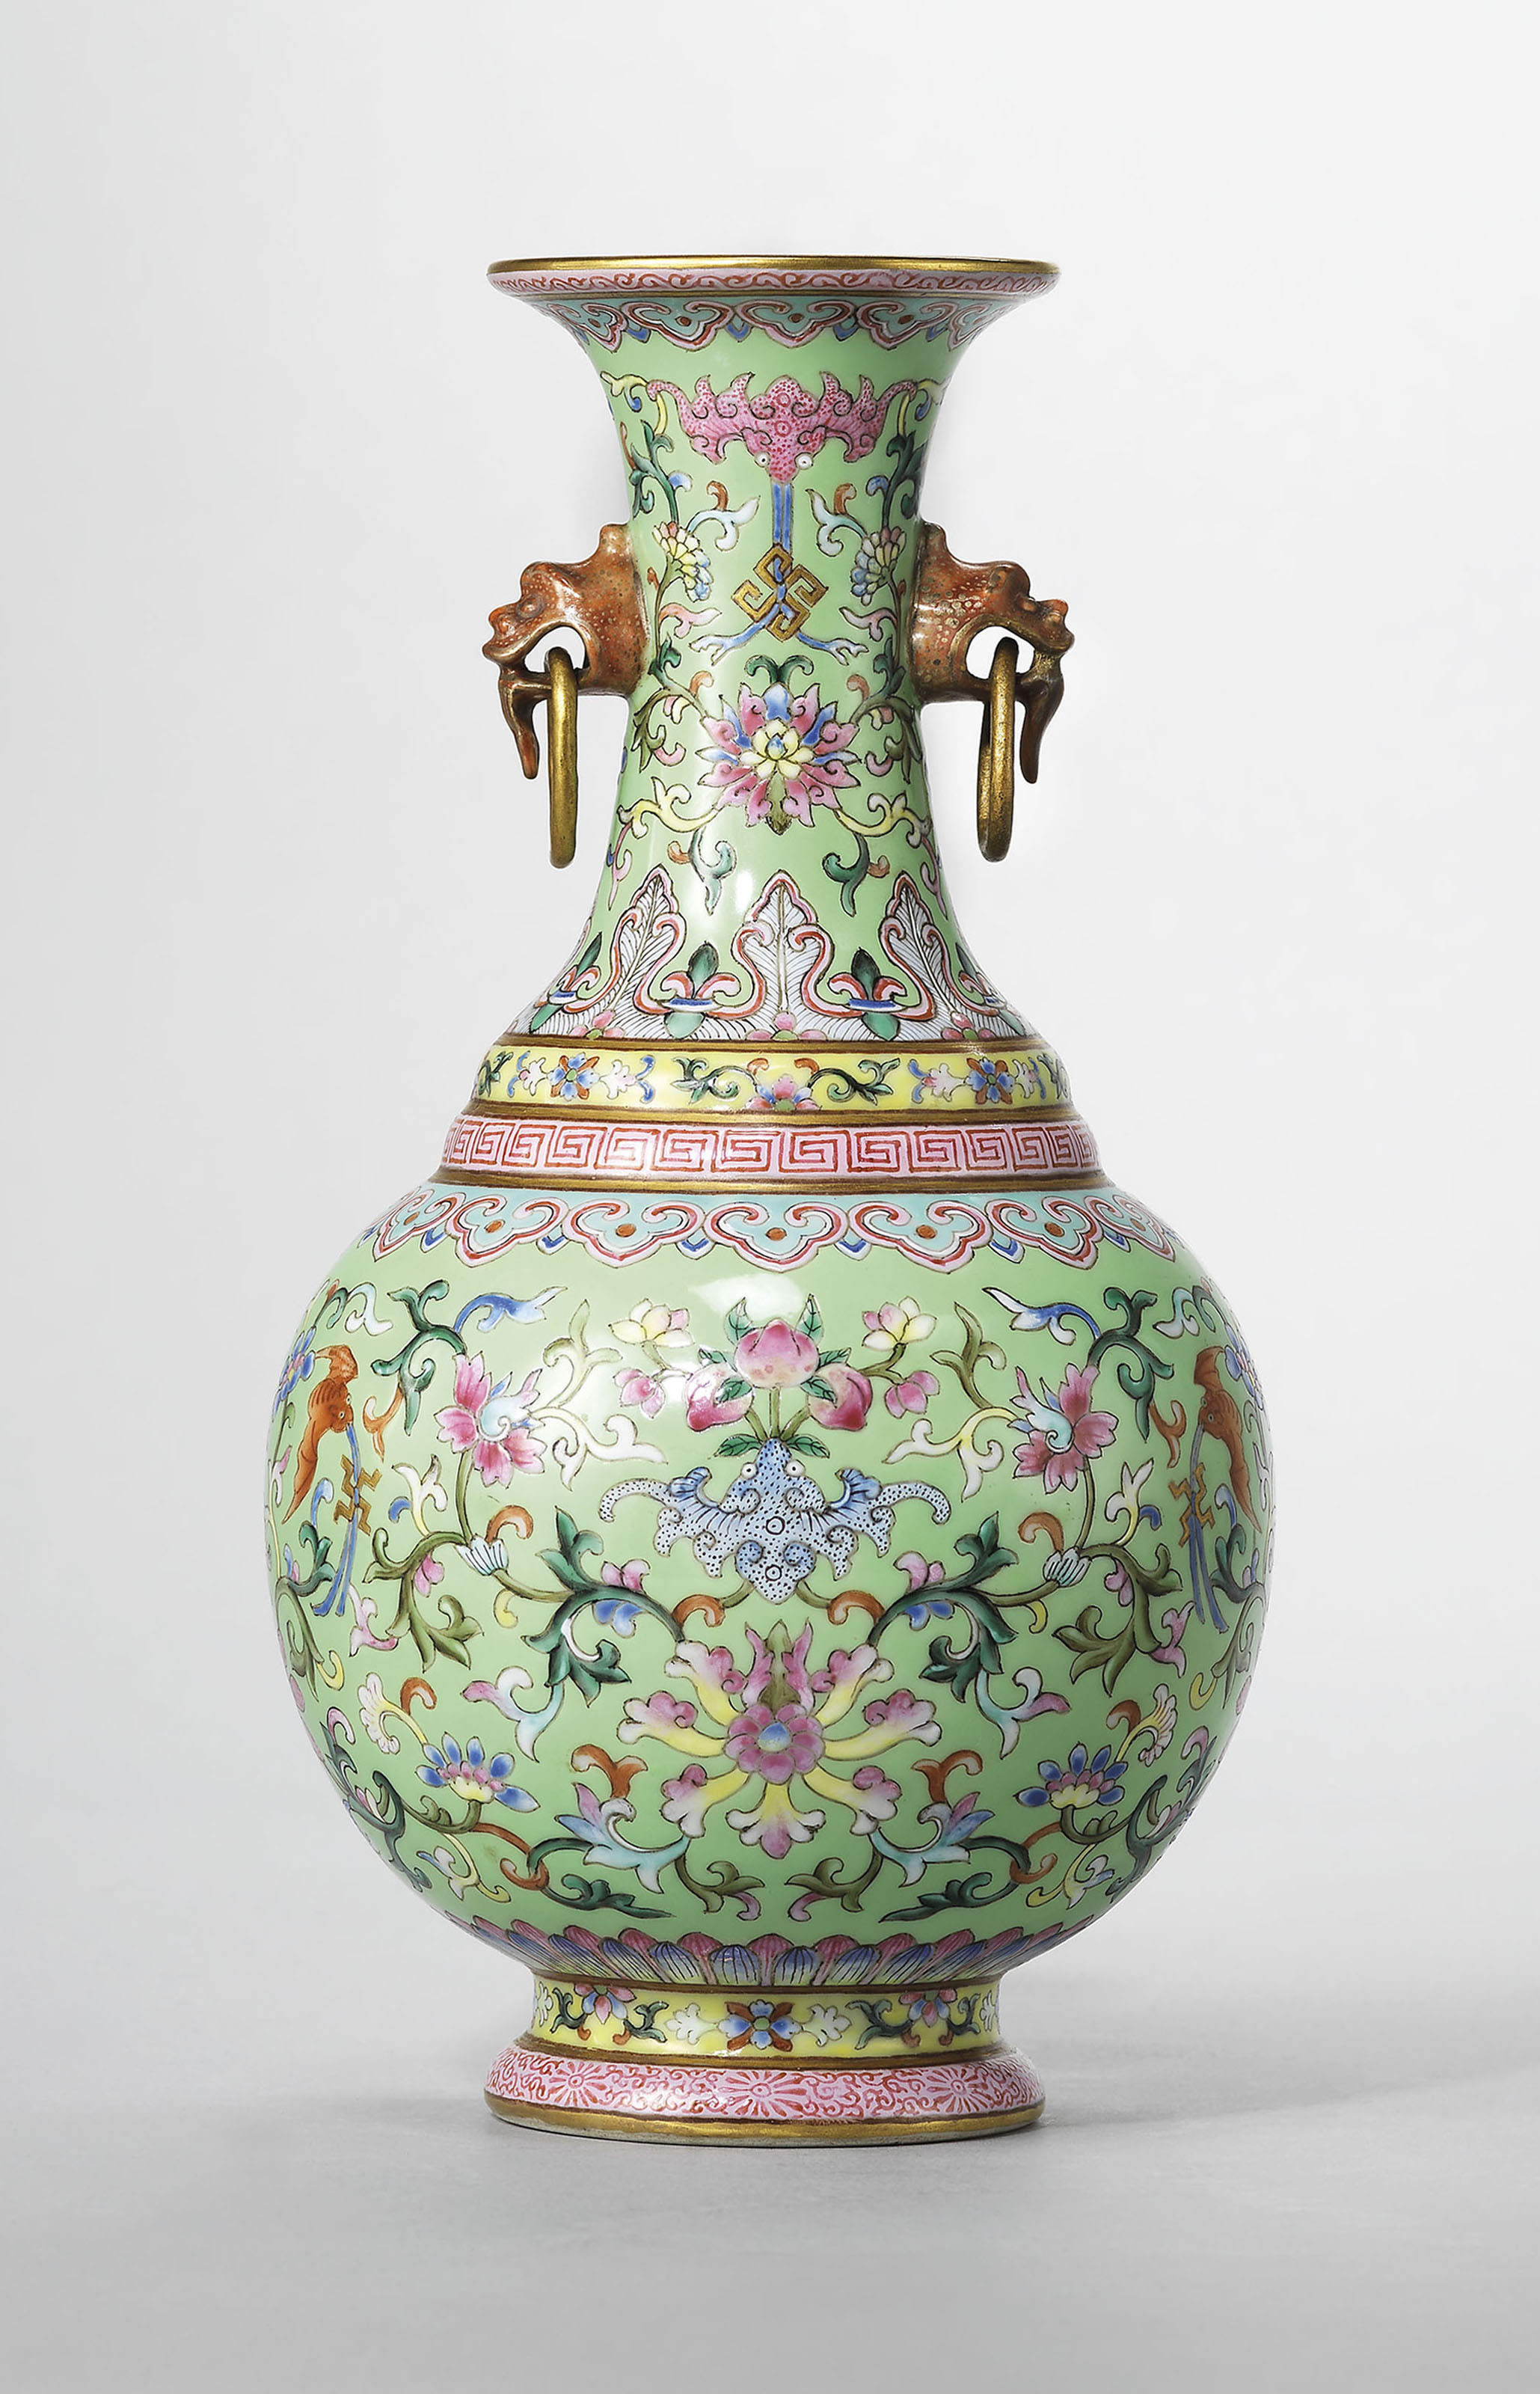 green celadon vase of chinese floor vase photos a guide to the symbolism of flowers on throughout chinese floor vase photos a guide to the symbolism of flowers on chinese ceramics of chinese